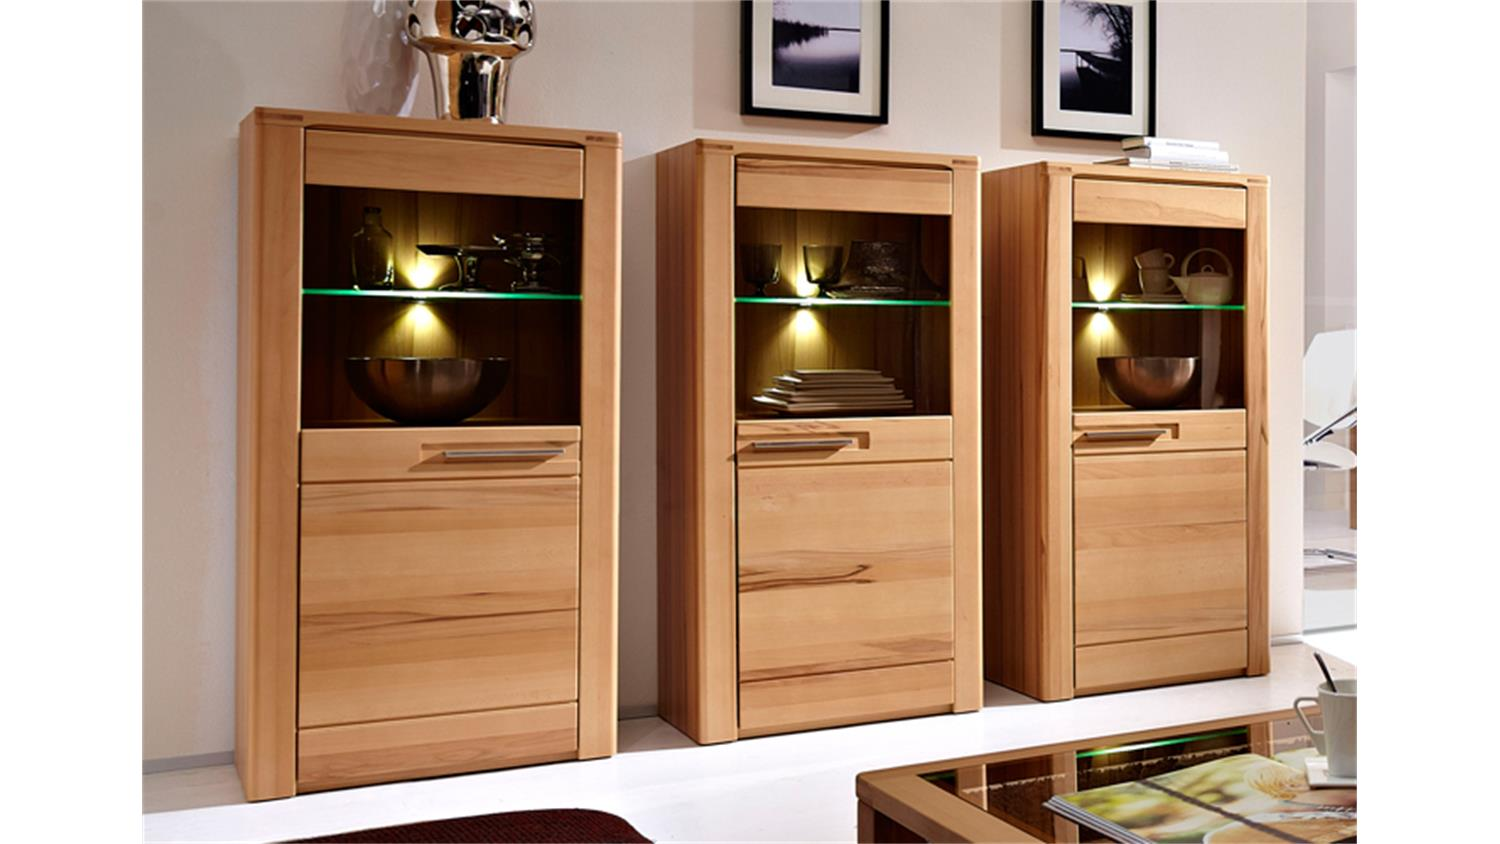 vitrine nature plus in kernbuche teilmassiv lackiert 3er set. Black Bedroom Furniture Sets. Home Design Ideas